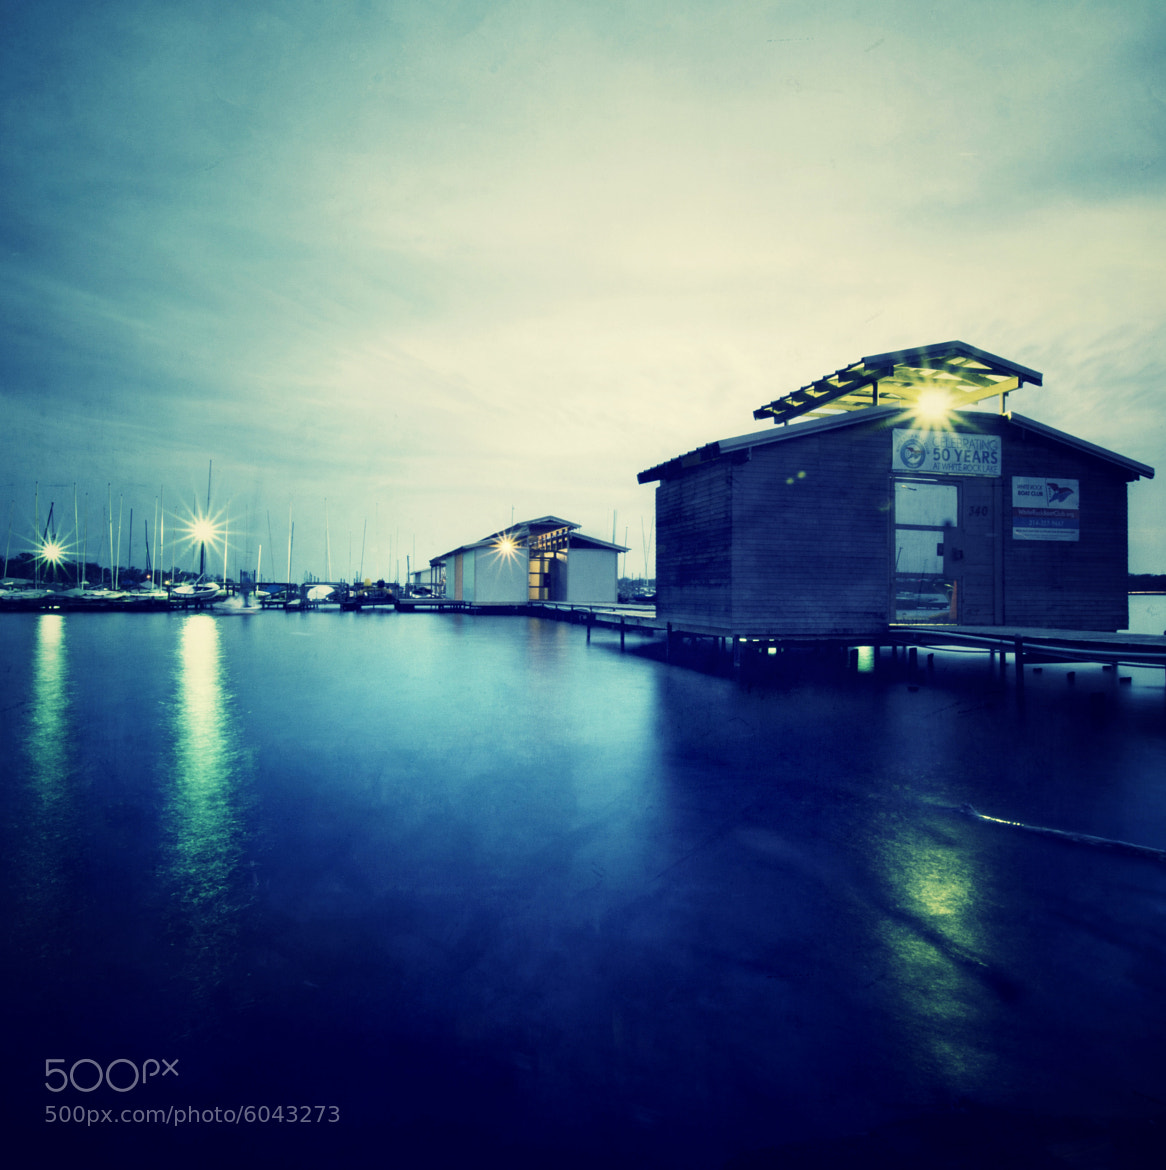 Photograph On the Edge of Water by Halbert Bai on 500px